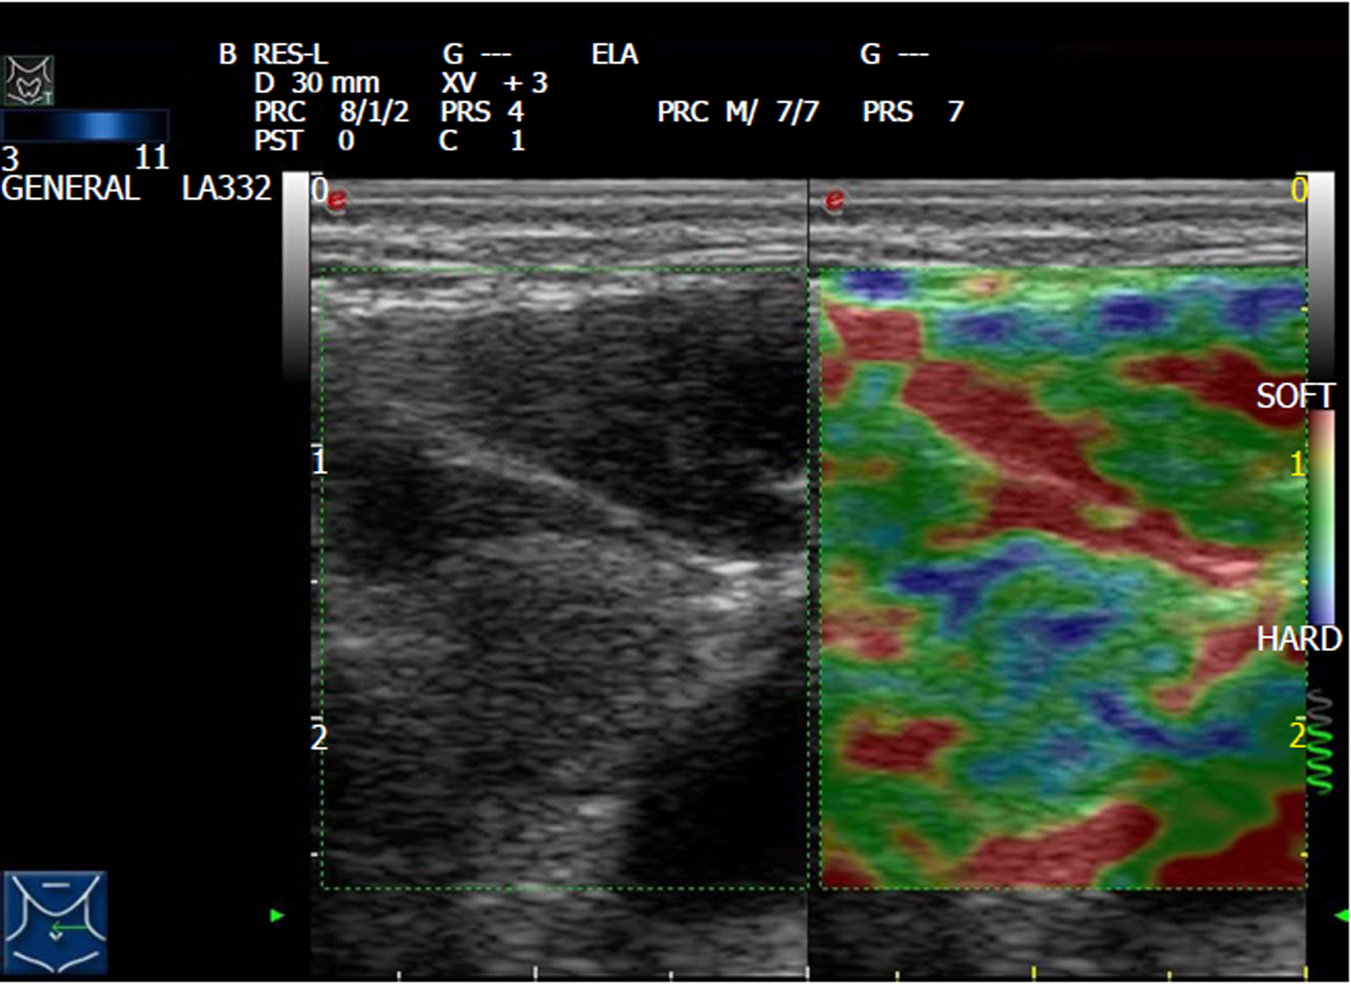 Value Of Contrast Enhanced Ultrasound Combined With Elastography